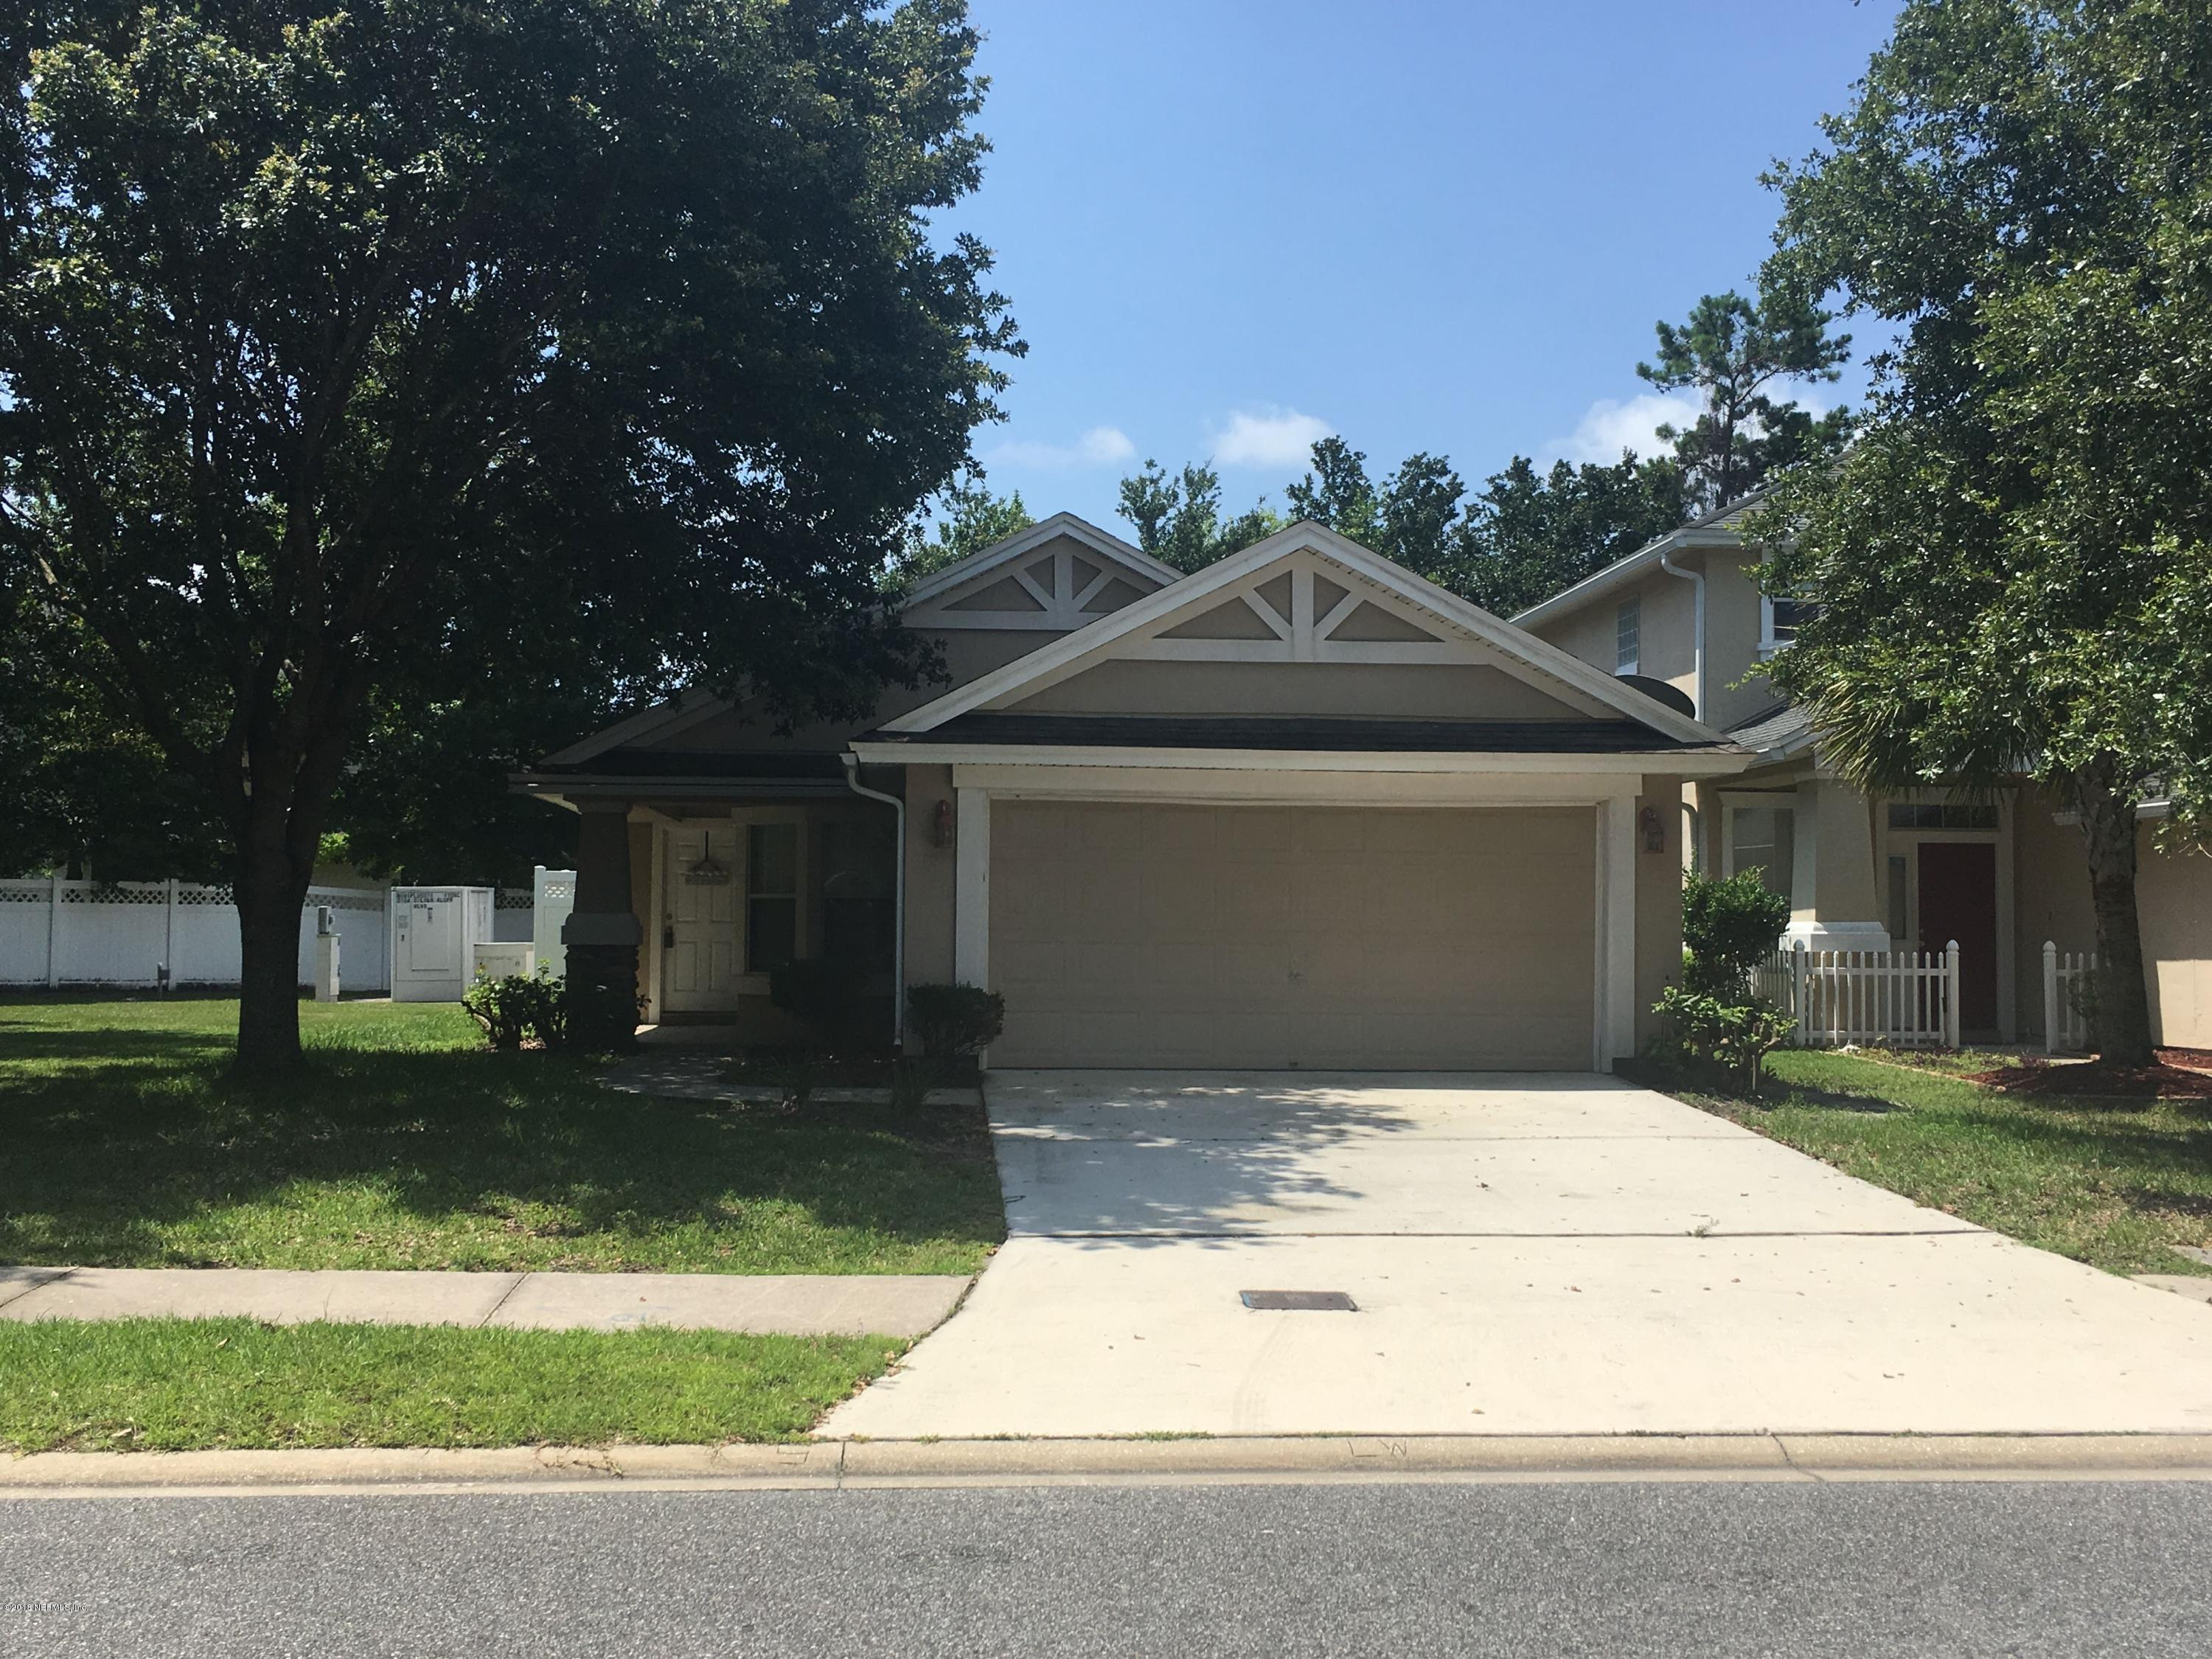 3702 SILVER BLUFF, ORANGE PARK, FLORIDA 32065, 3 Bedrooms Bedrooms, ,2 BathroomsBathrooms,Residential - single family,For sale,SILVER BLUFF,950836